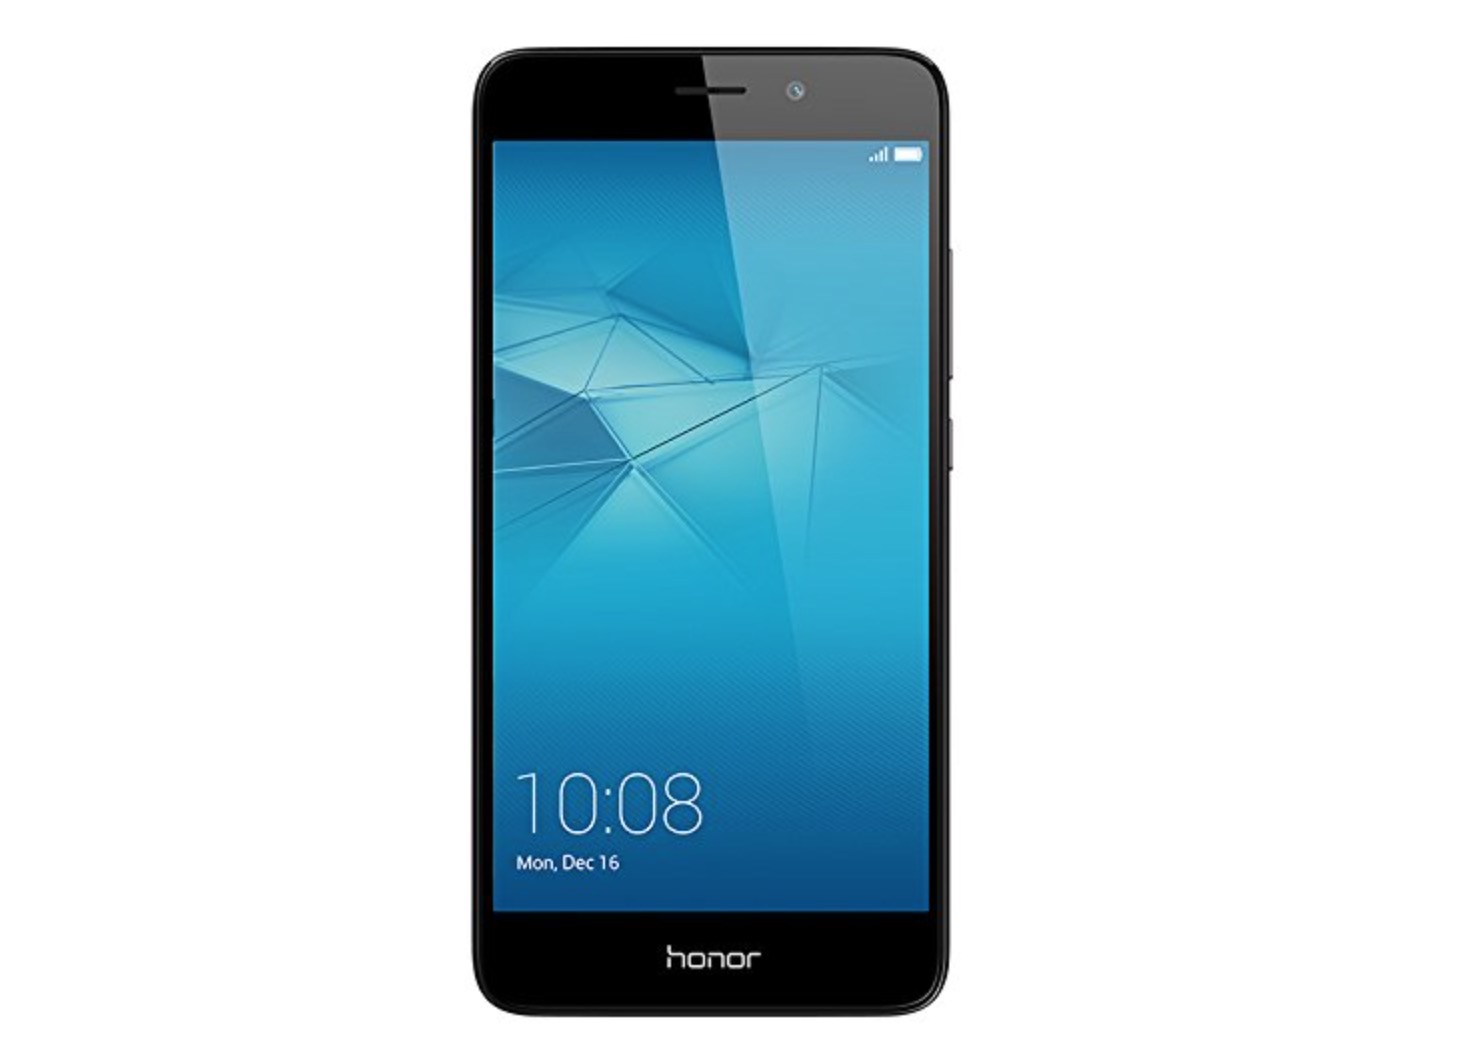 Honor 5C smartphone